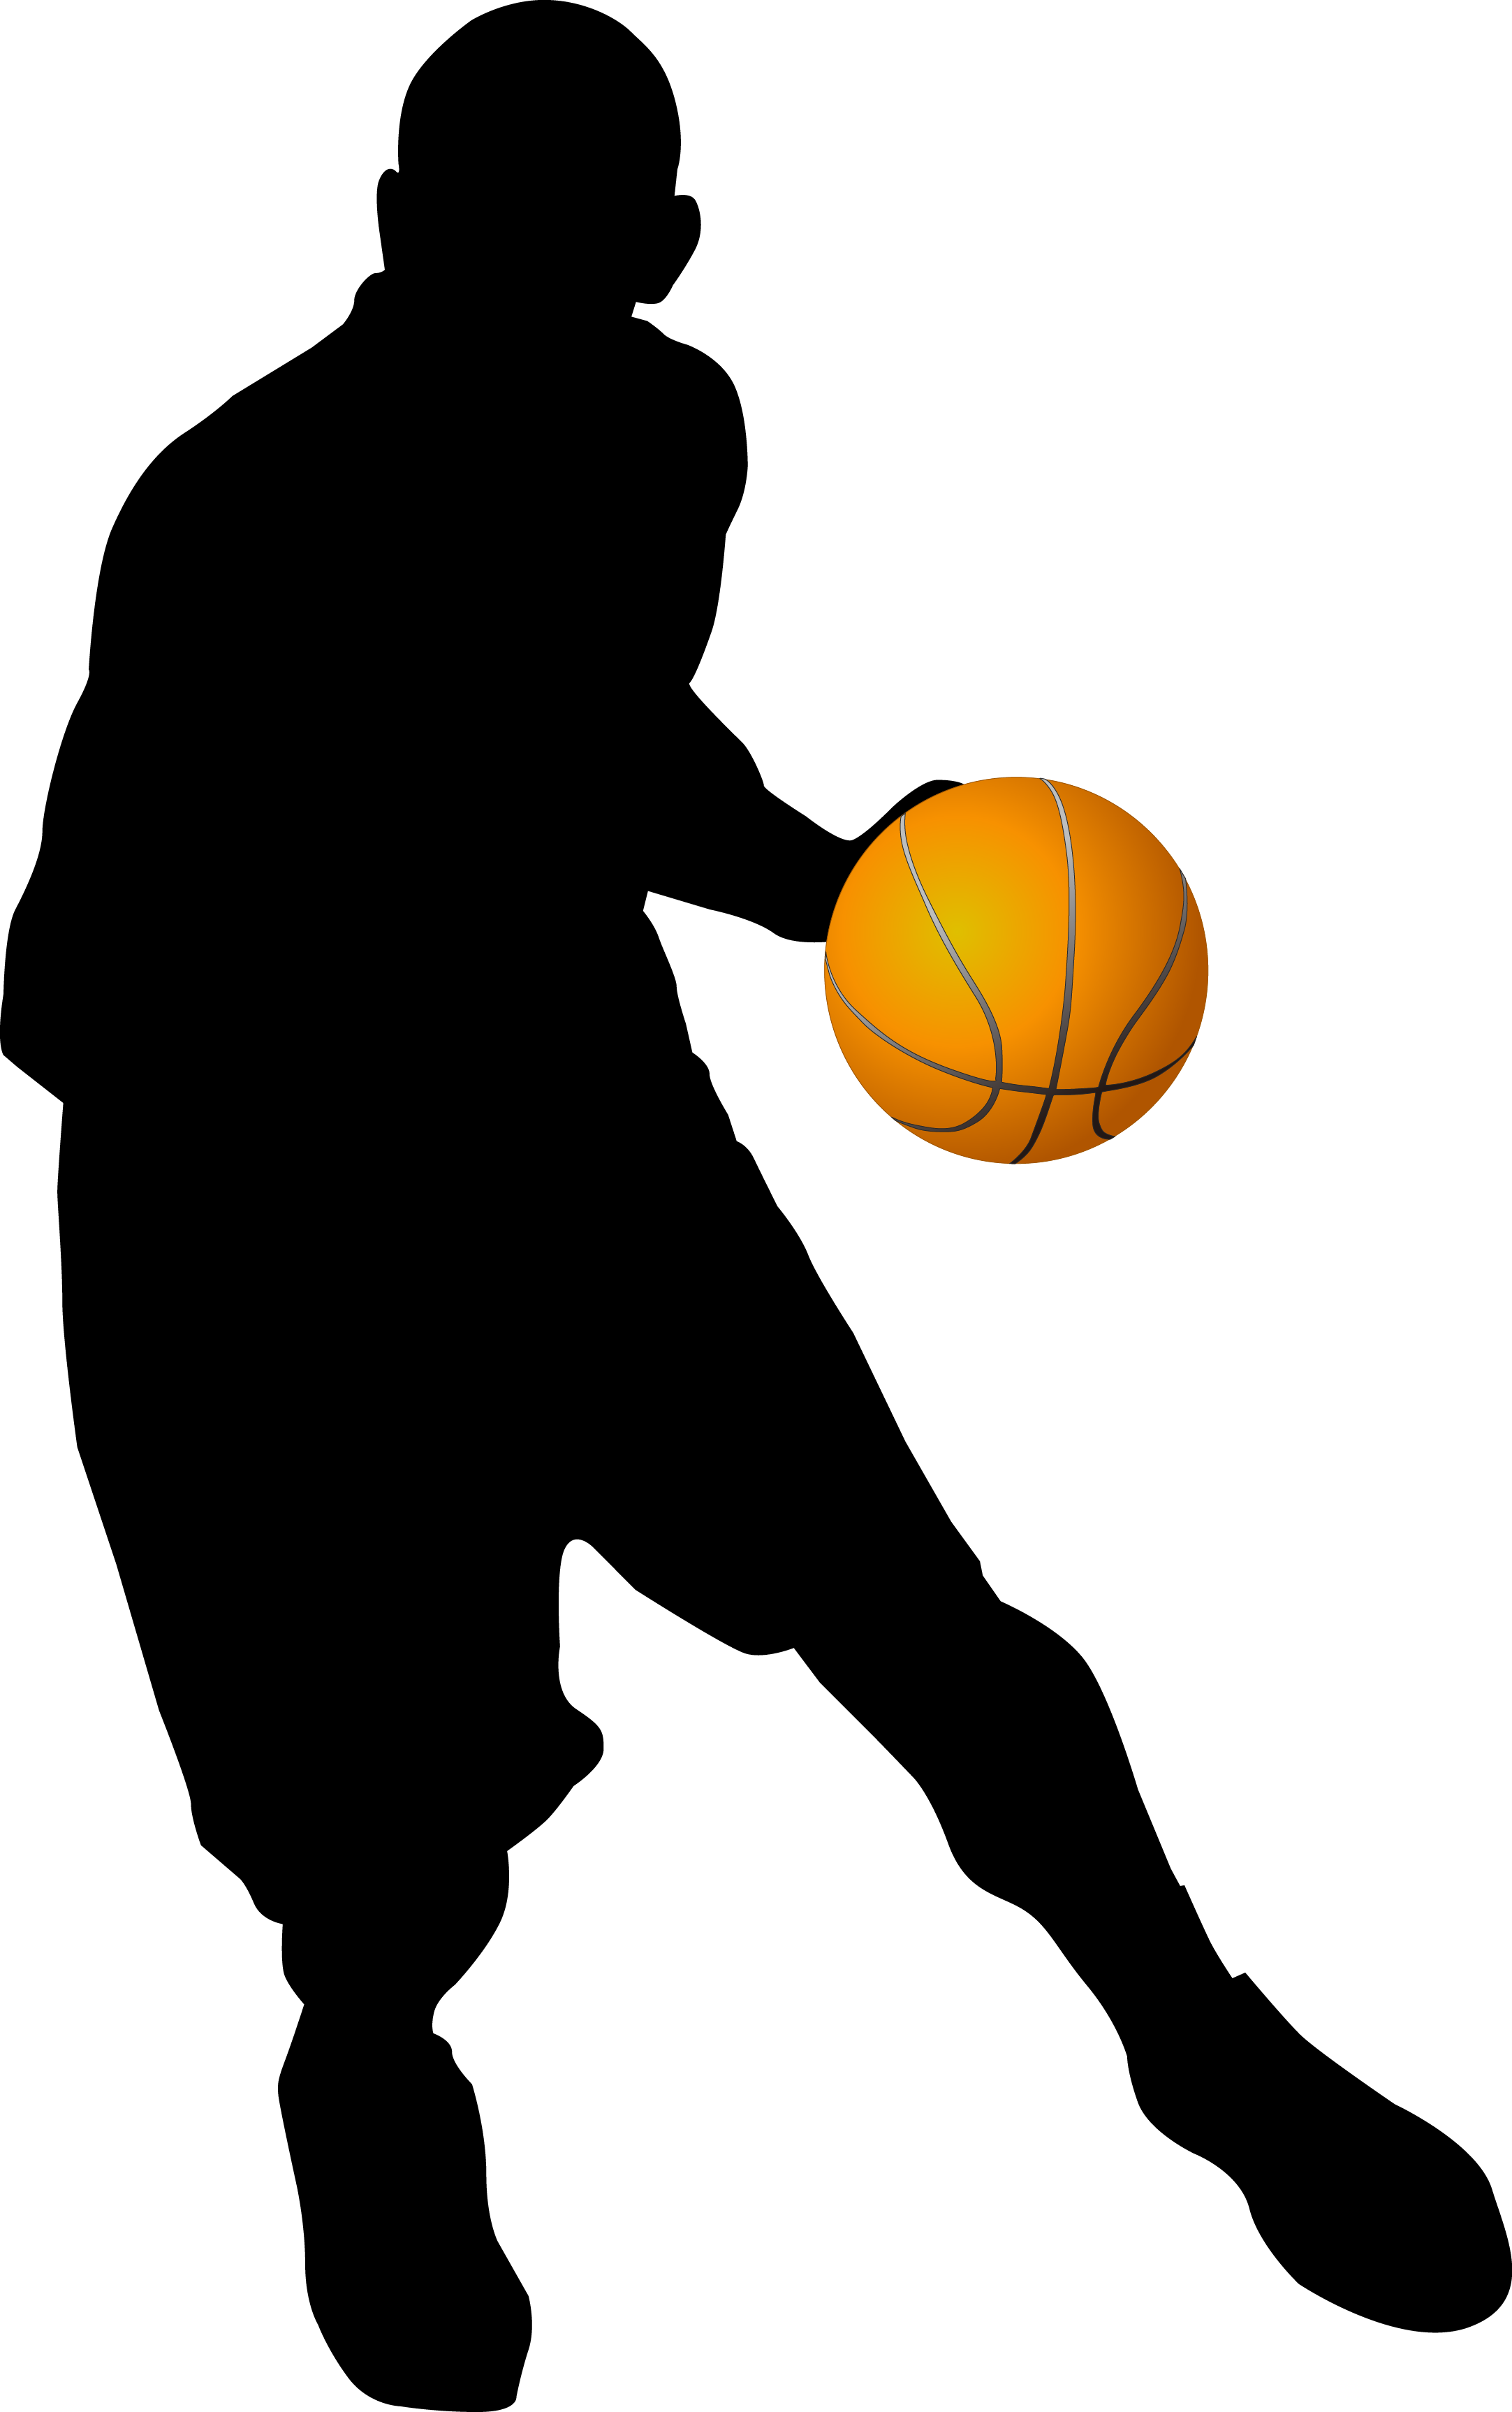 Basketball player shooting clipart png black and white Chicago Bulls Basketball player Clip art - Basketball player 2165 ... png black and white